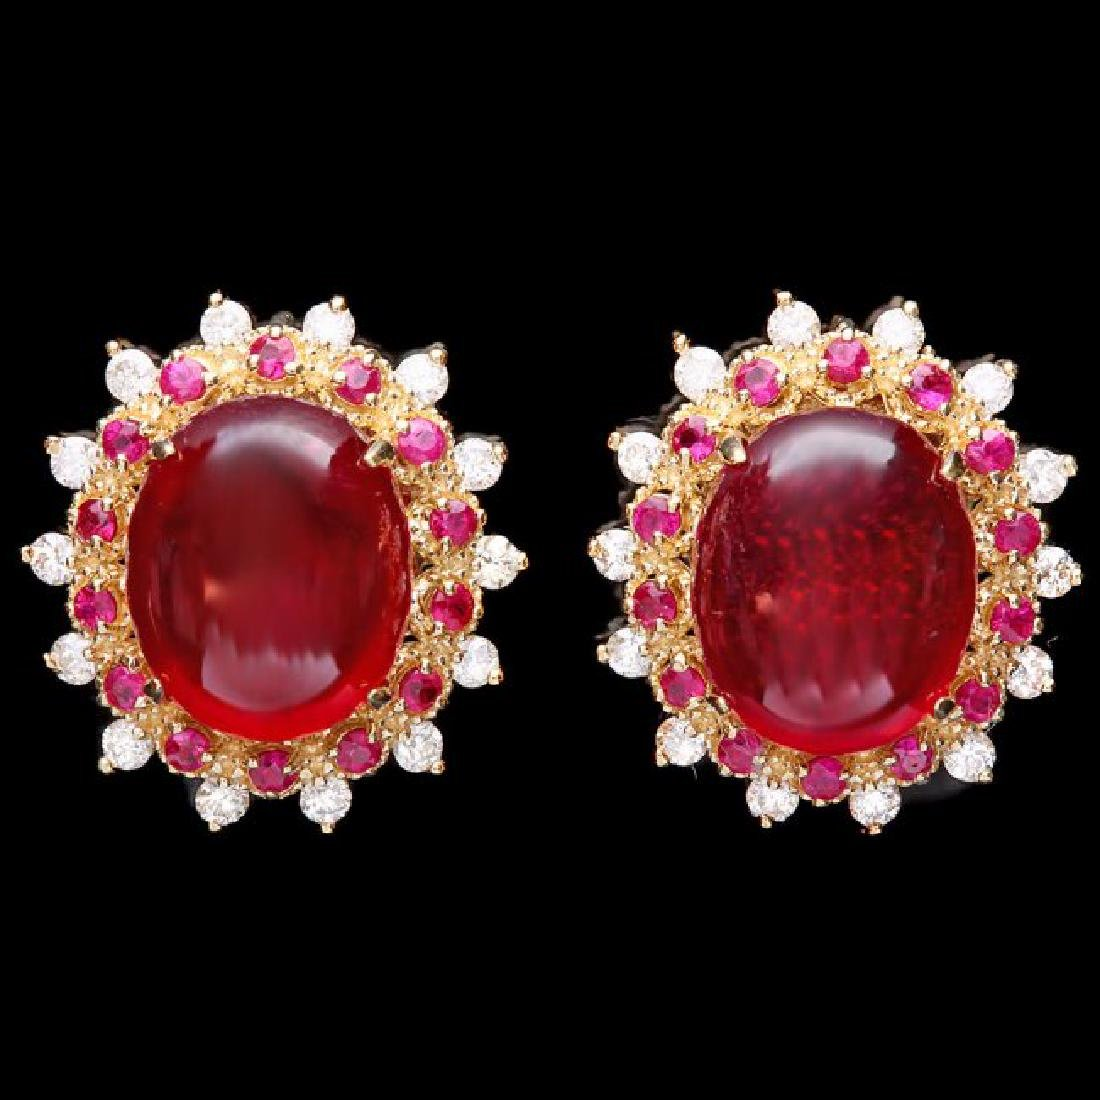 14k Gold 17.5ct Ruby 0.80ct Diamond Earrings